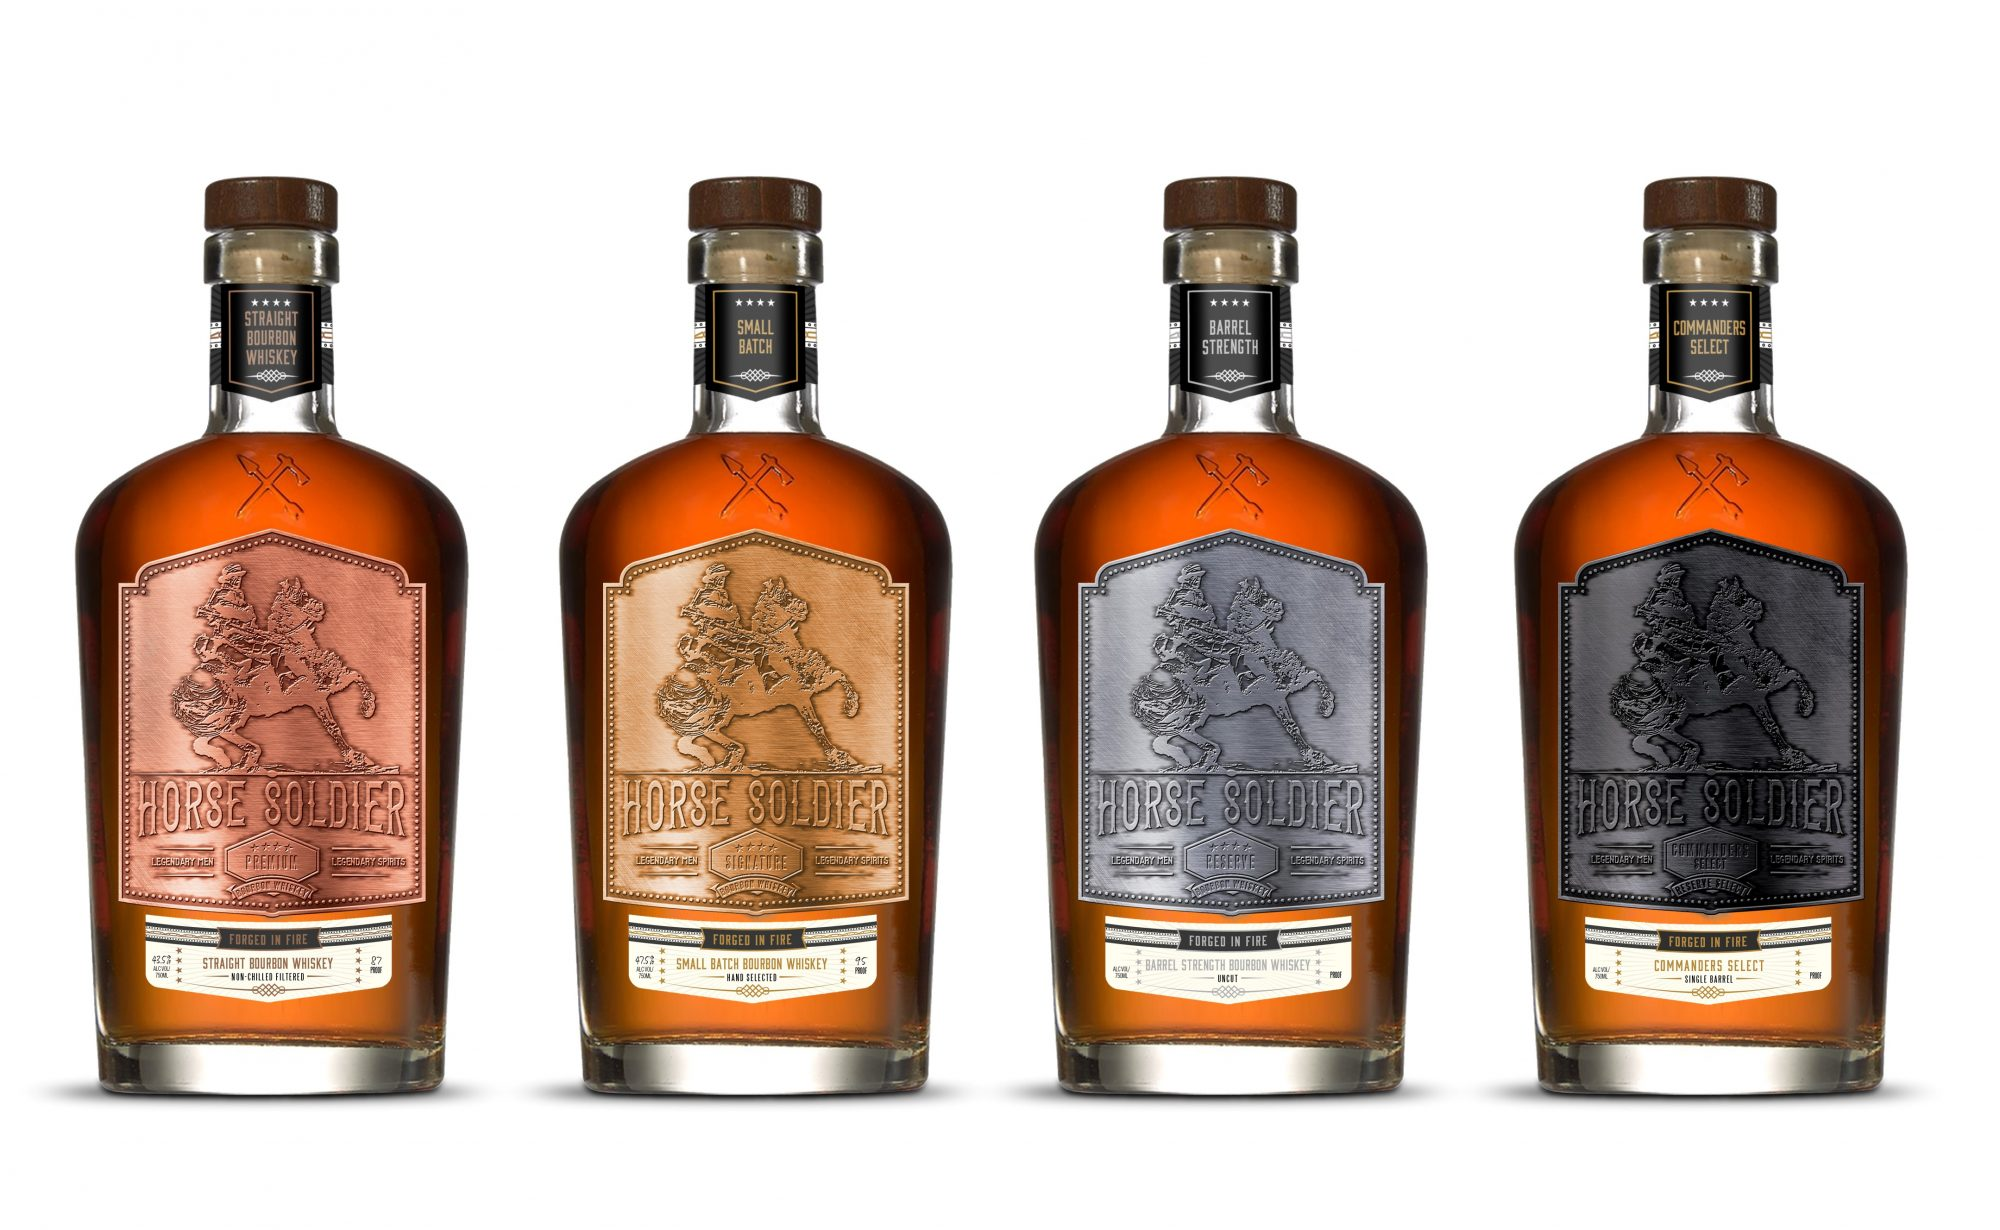 American Freedom Distillery's Horse Soldier Straight Bourbon